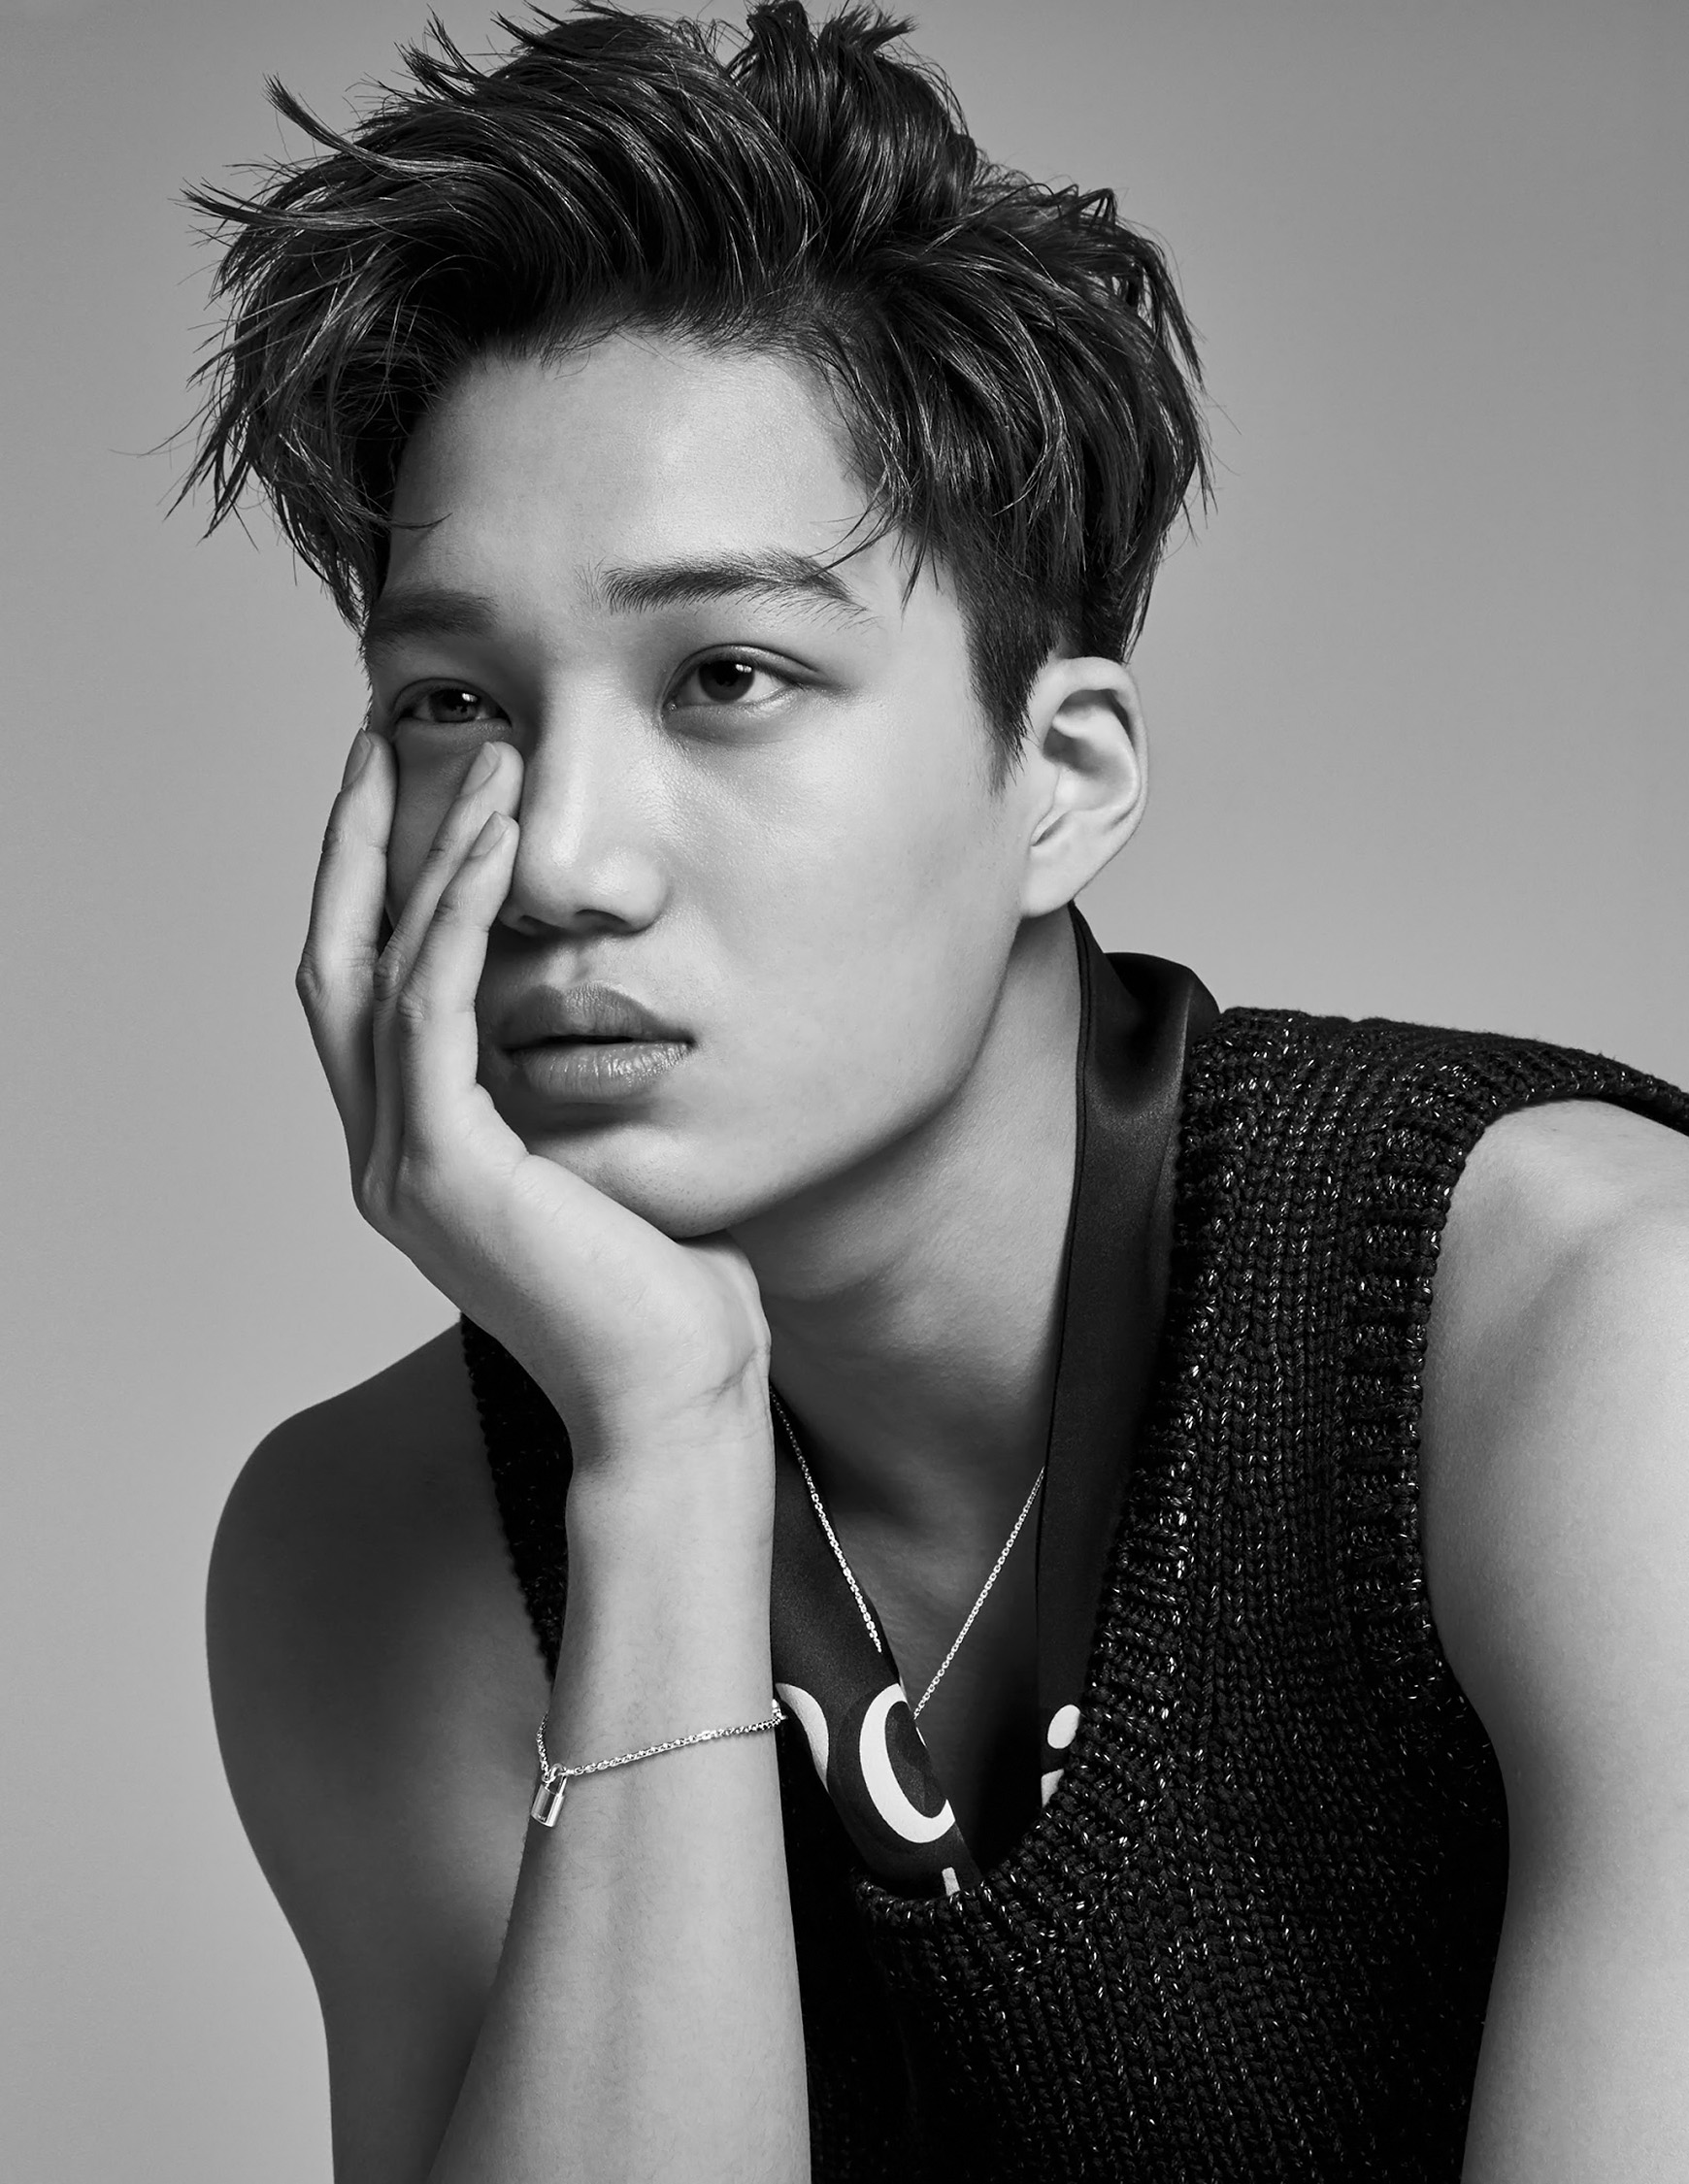 Kai Android Iphone Wallpaper 77715 Asiachan Kpop Image Board